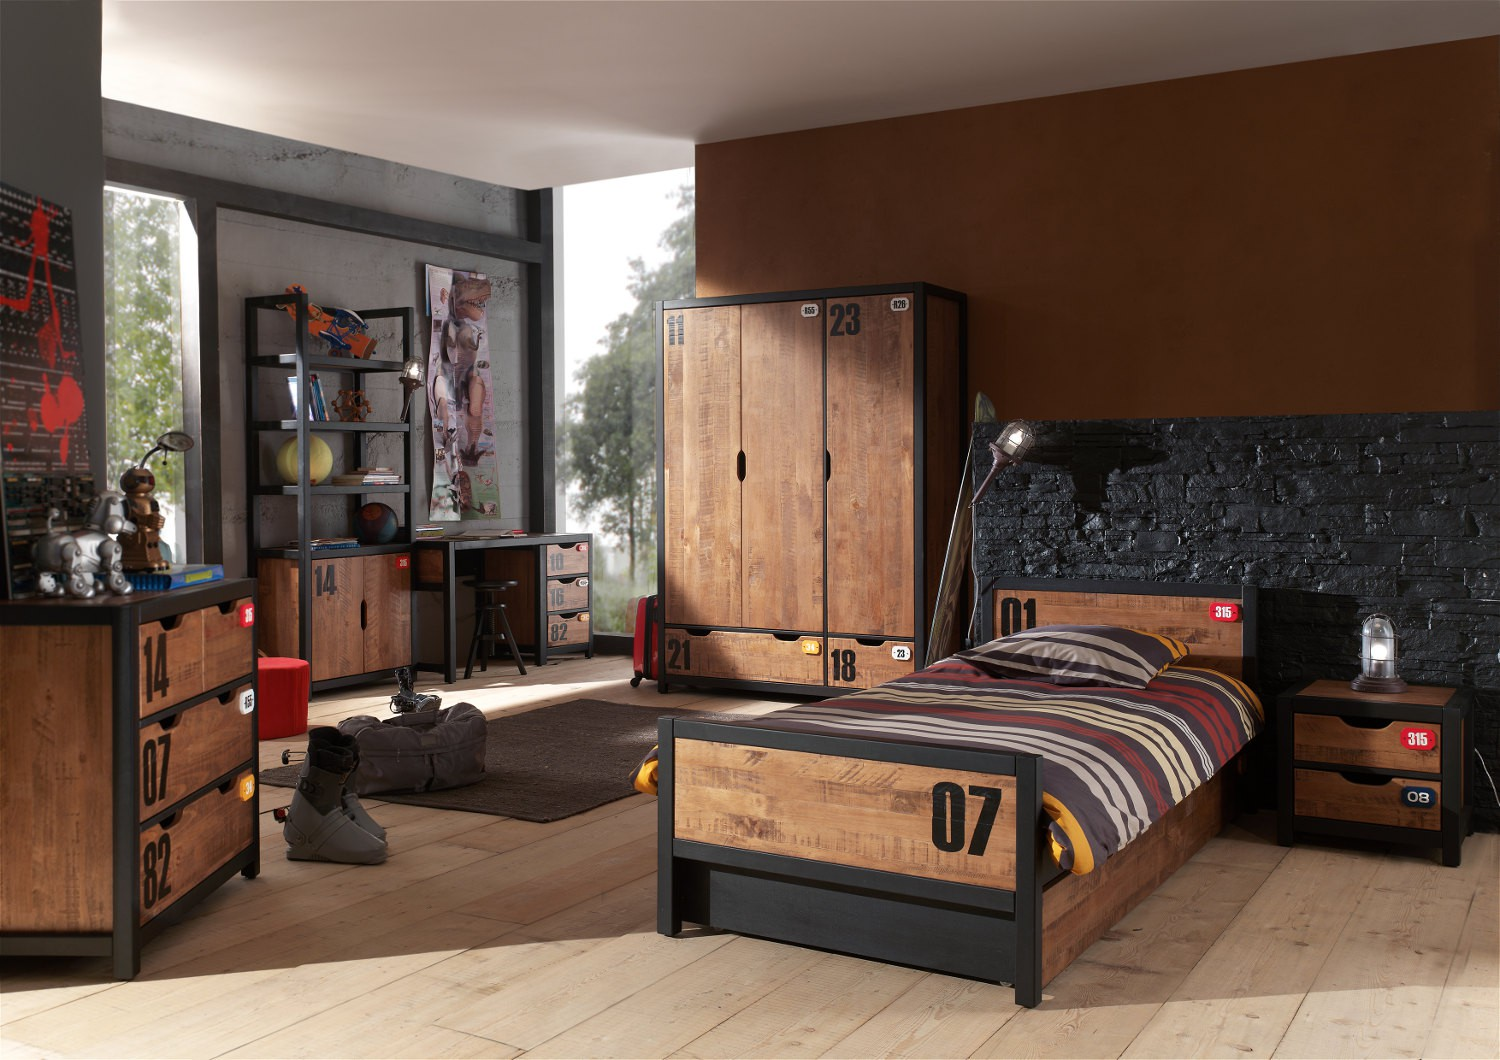 kommode alex 4 schubladen kiefer cognacfarbig schwarz kinder jugendzimmer alex. Black Bedroom Furniture Sets. Home Design Ideas